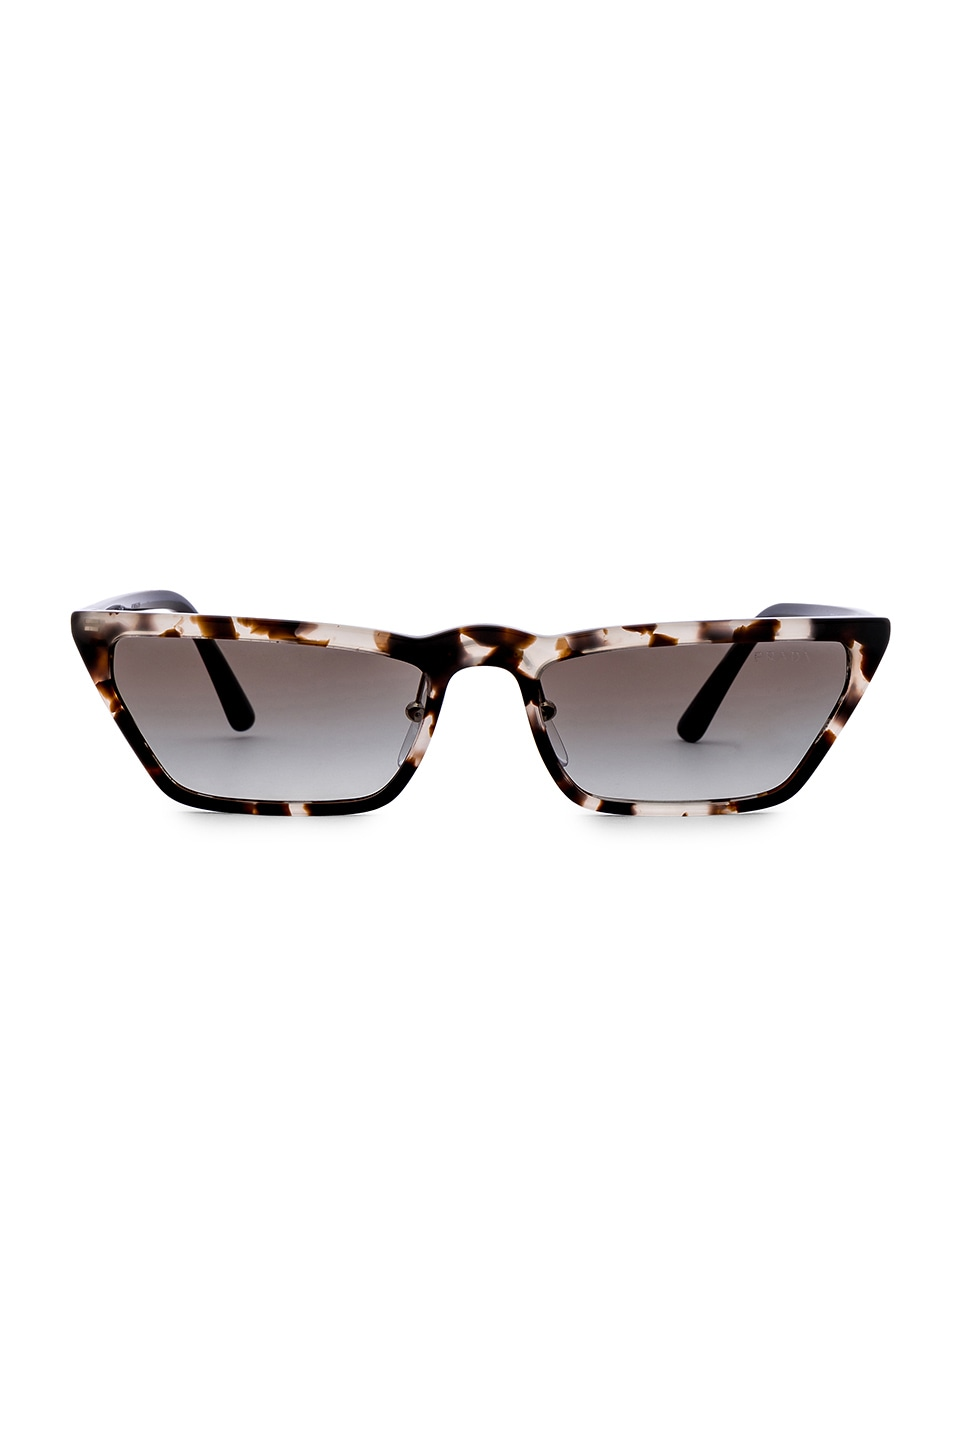 Prada Ultravox Acetate in Opal Spotted Brown & Grey Gradient